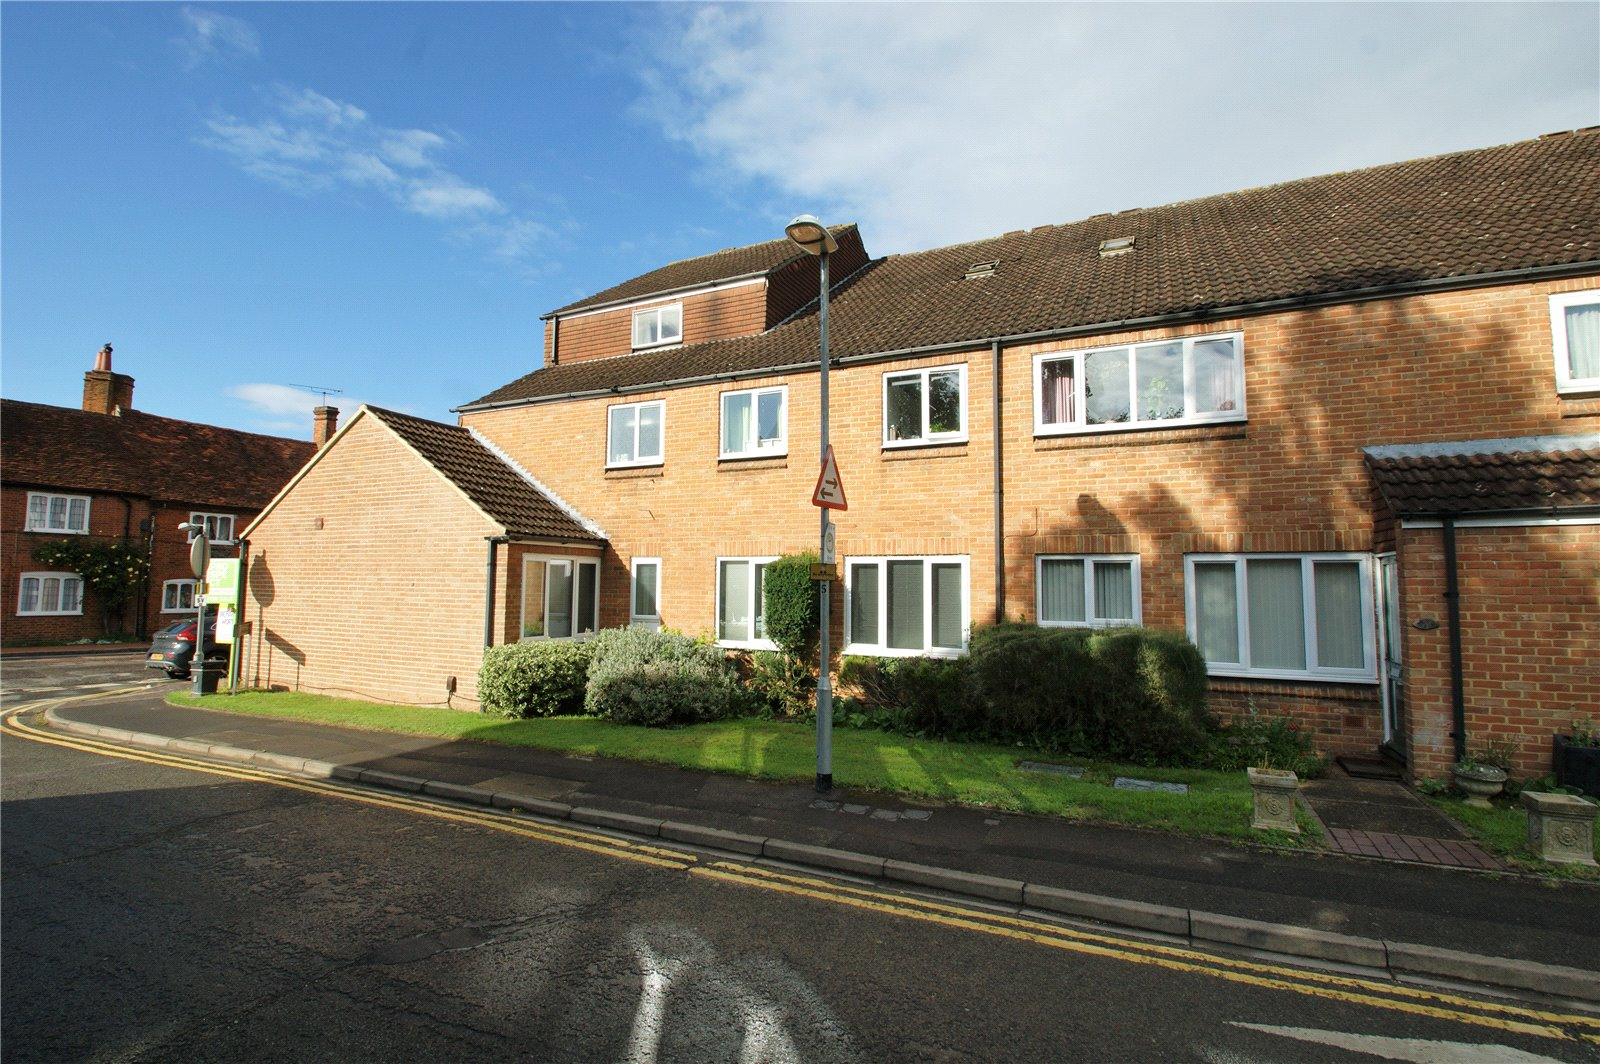 2 Bedrooms Apartment Flat for sale in Rose Street, Wokingham, Berkshire, RG40